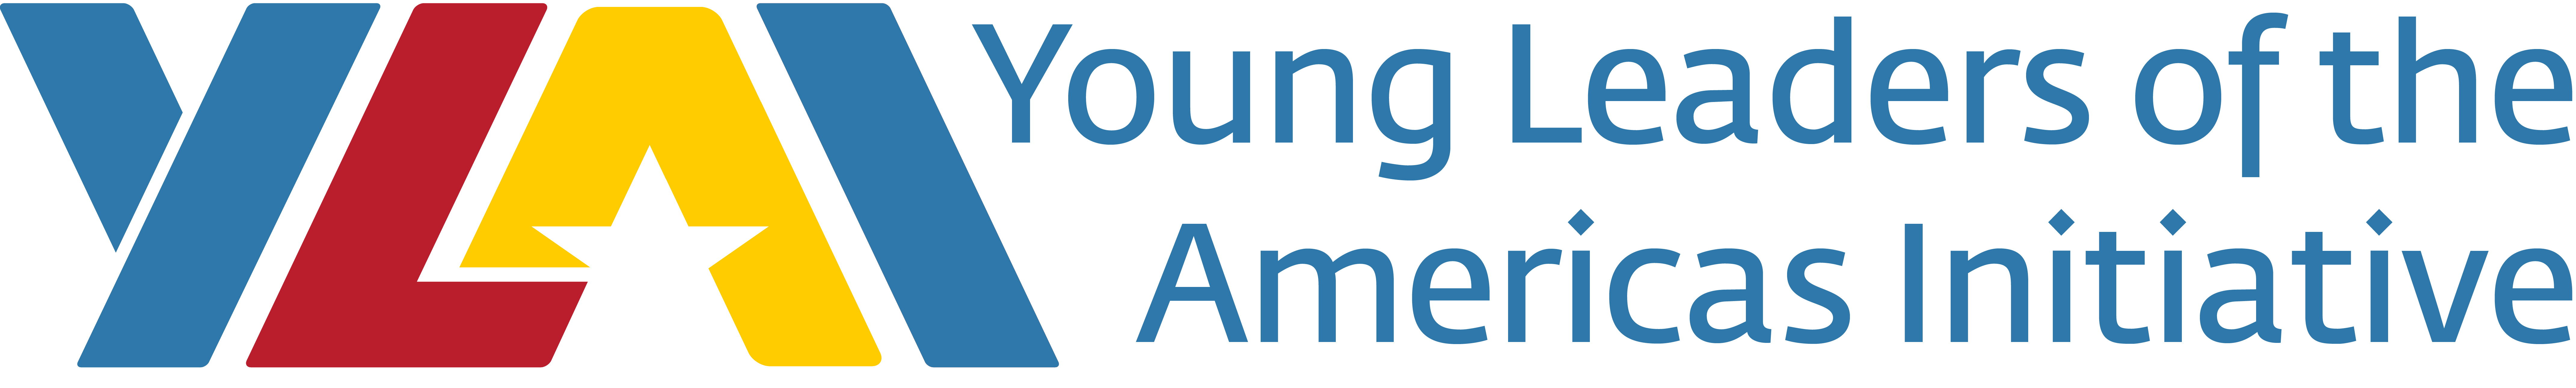 YLAI - Young Leaders of the Americas Initiative